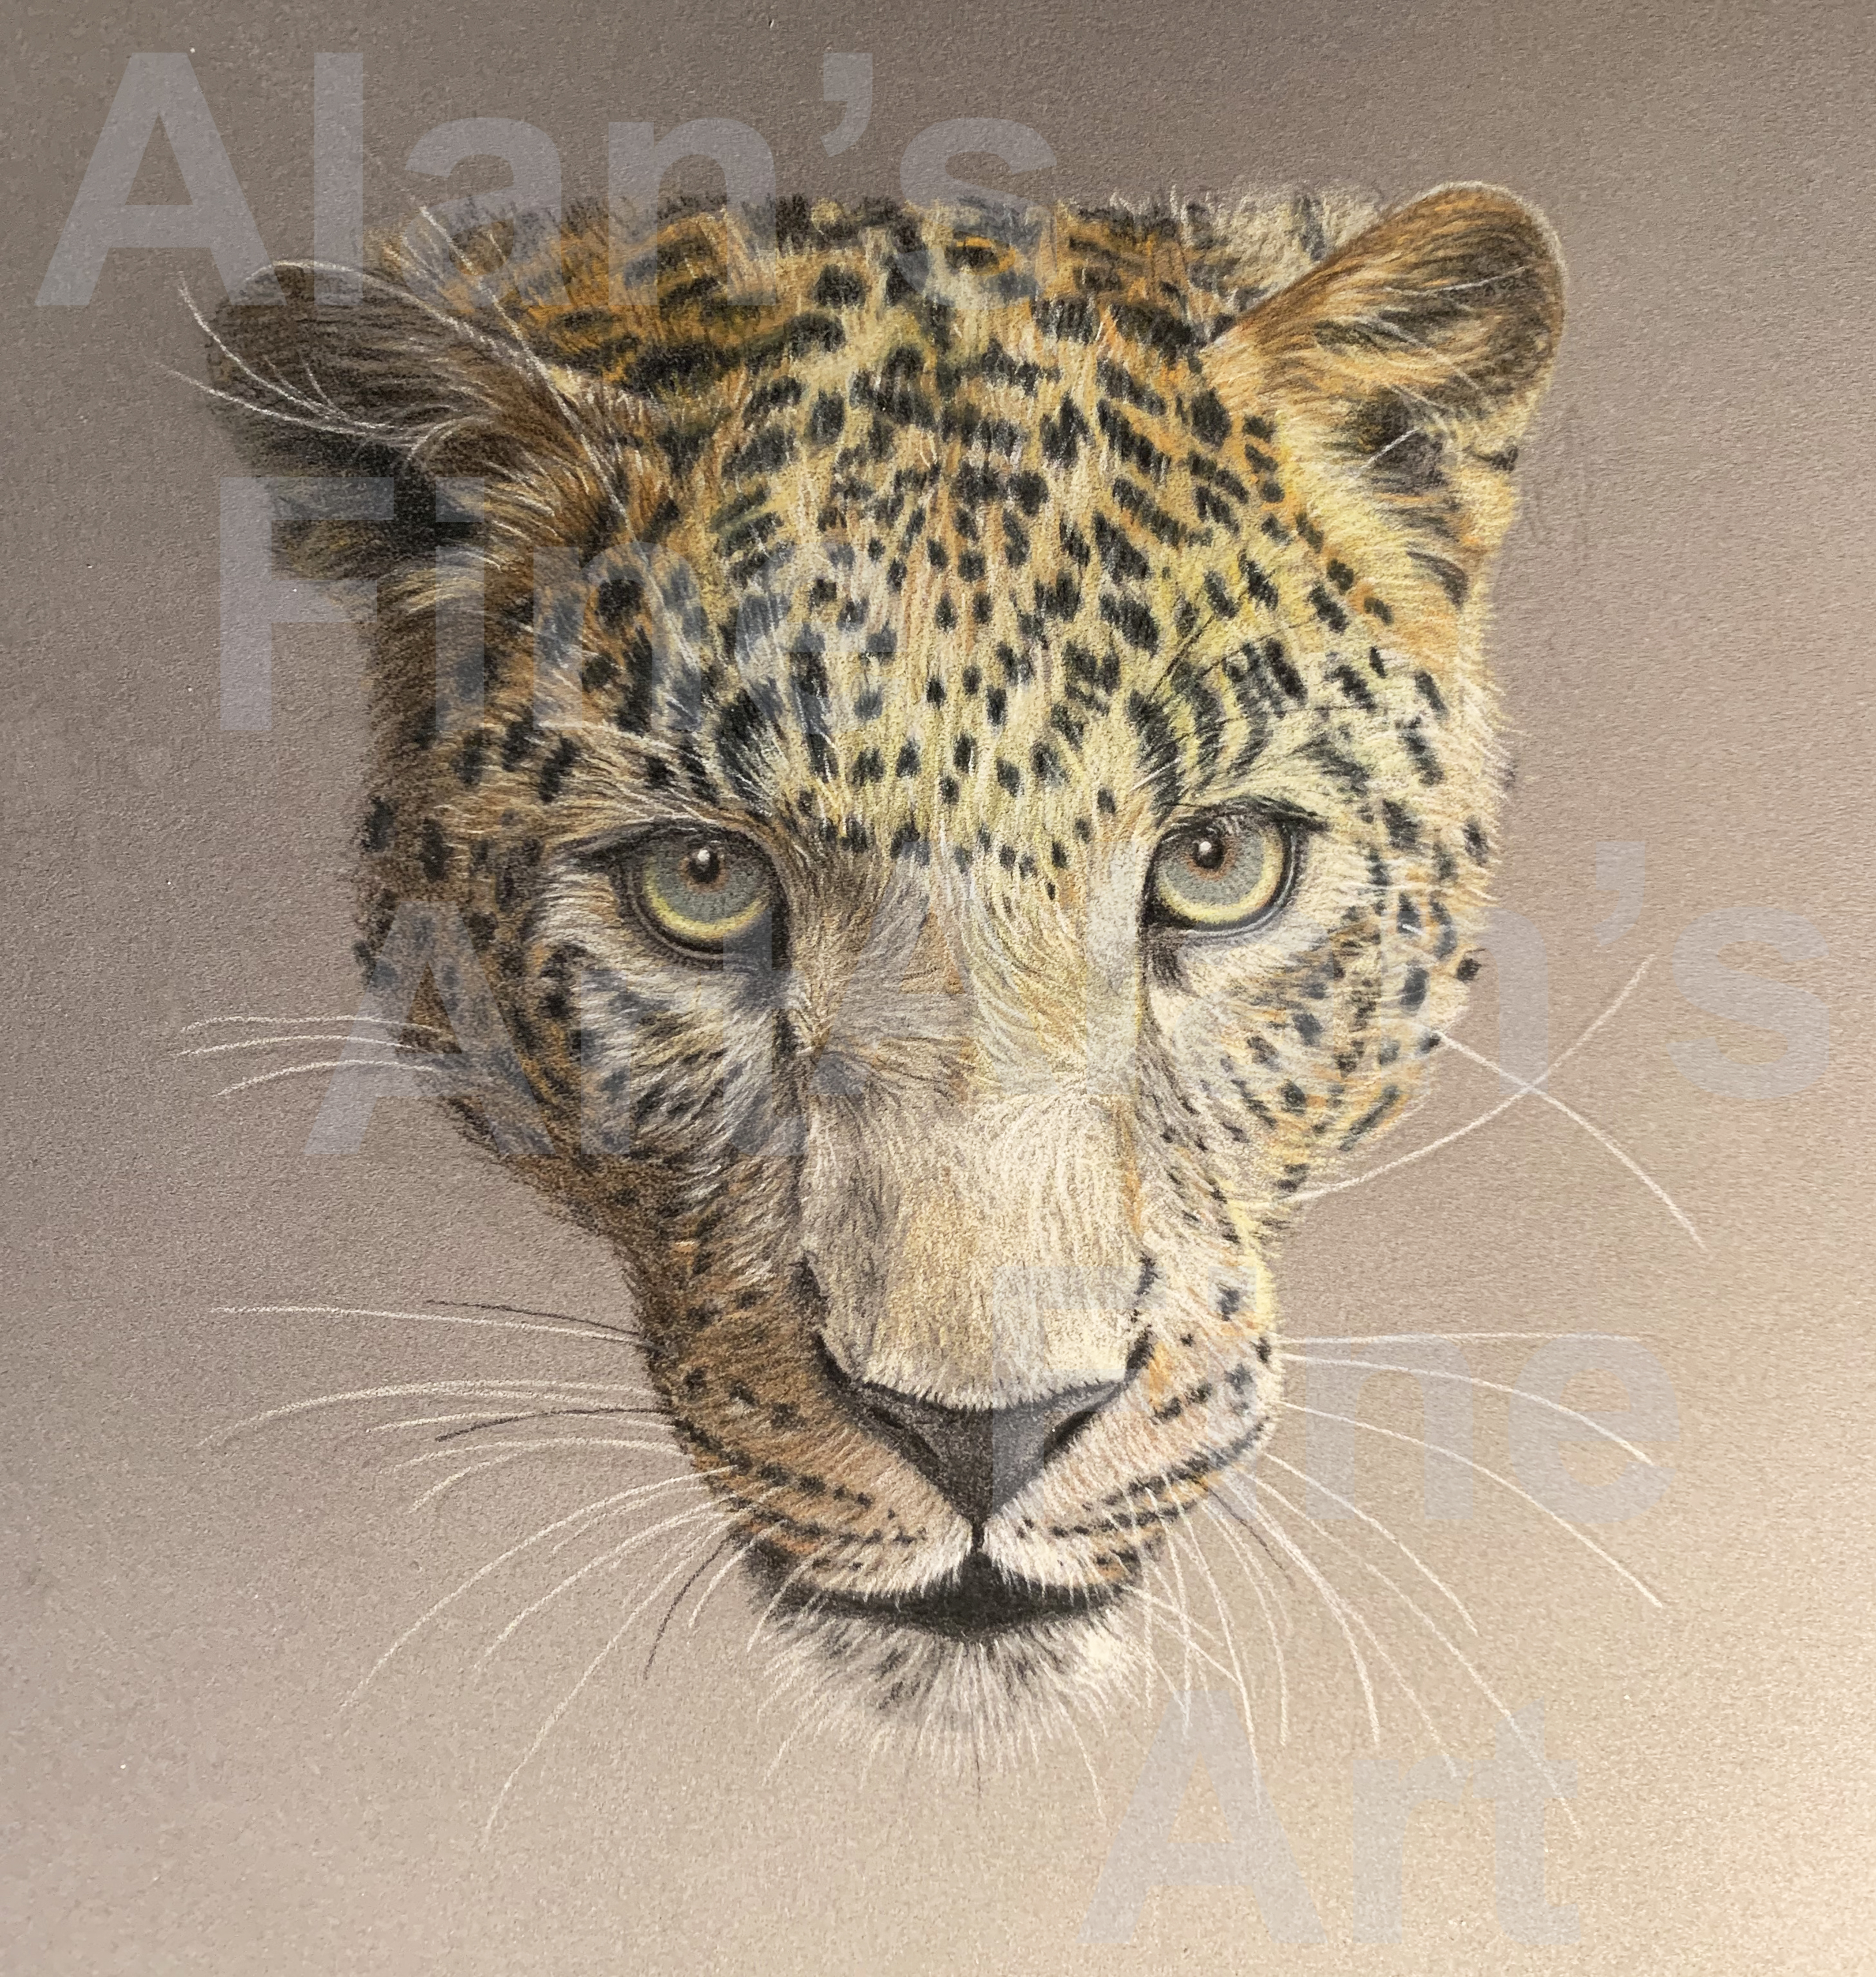 600 leopard iphone image IMG_0399 180 wide with watermark